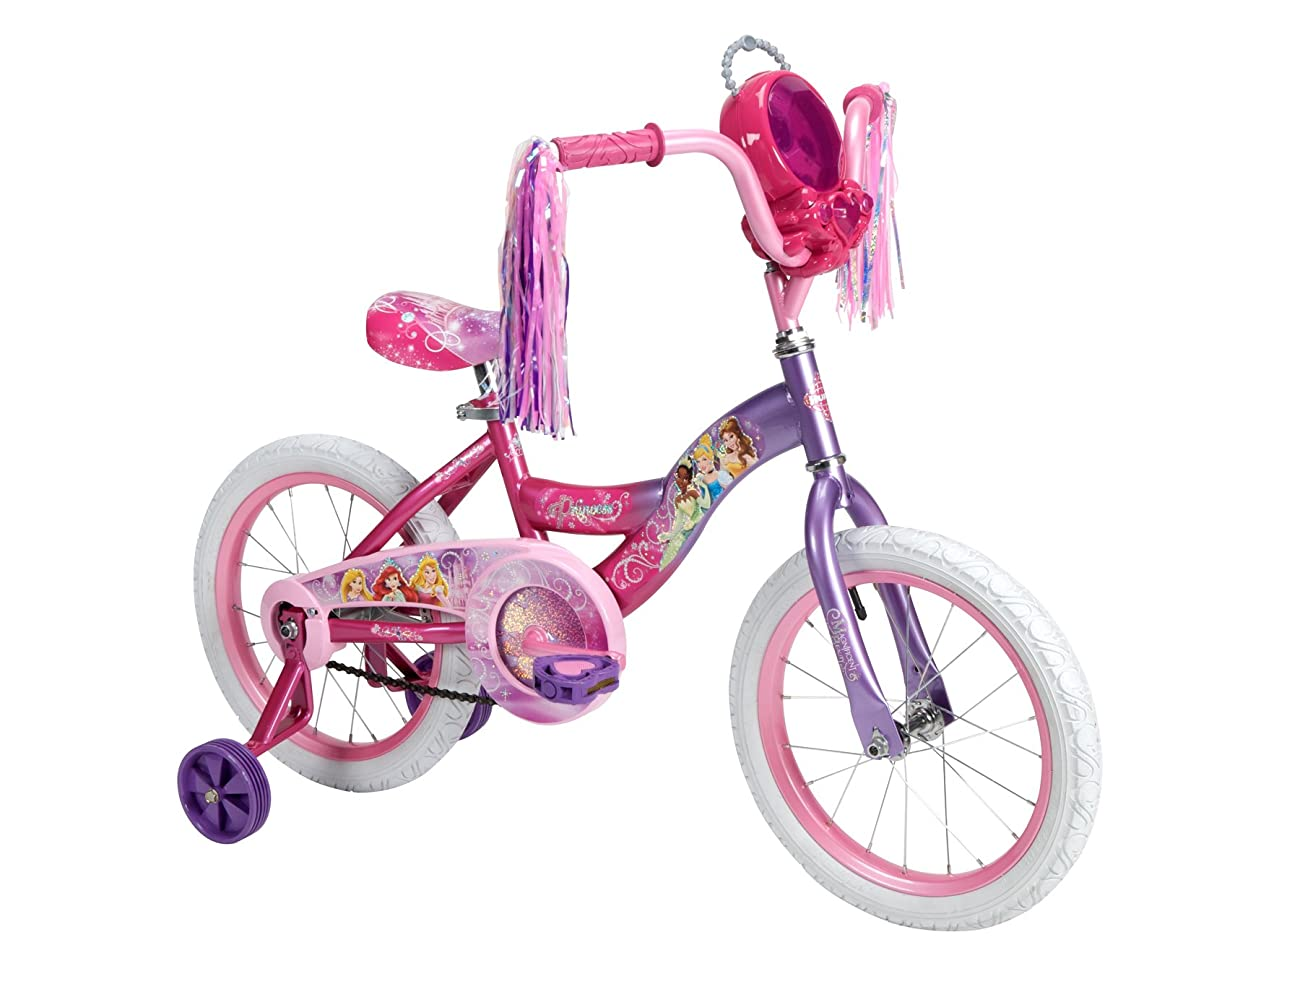 Huffy Bicycle Company Number 21975 Disney Princess Bike, Purple to Pink Fade, 16-Inch 0